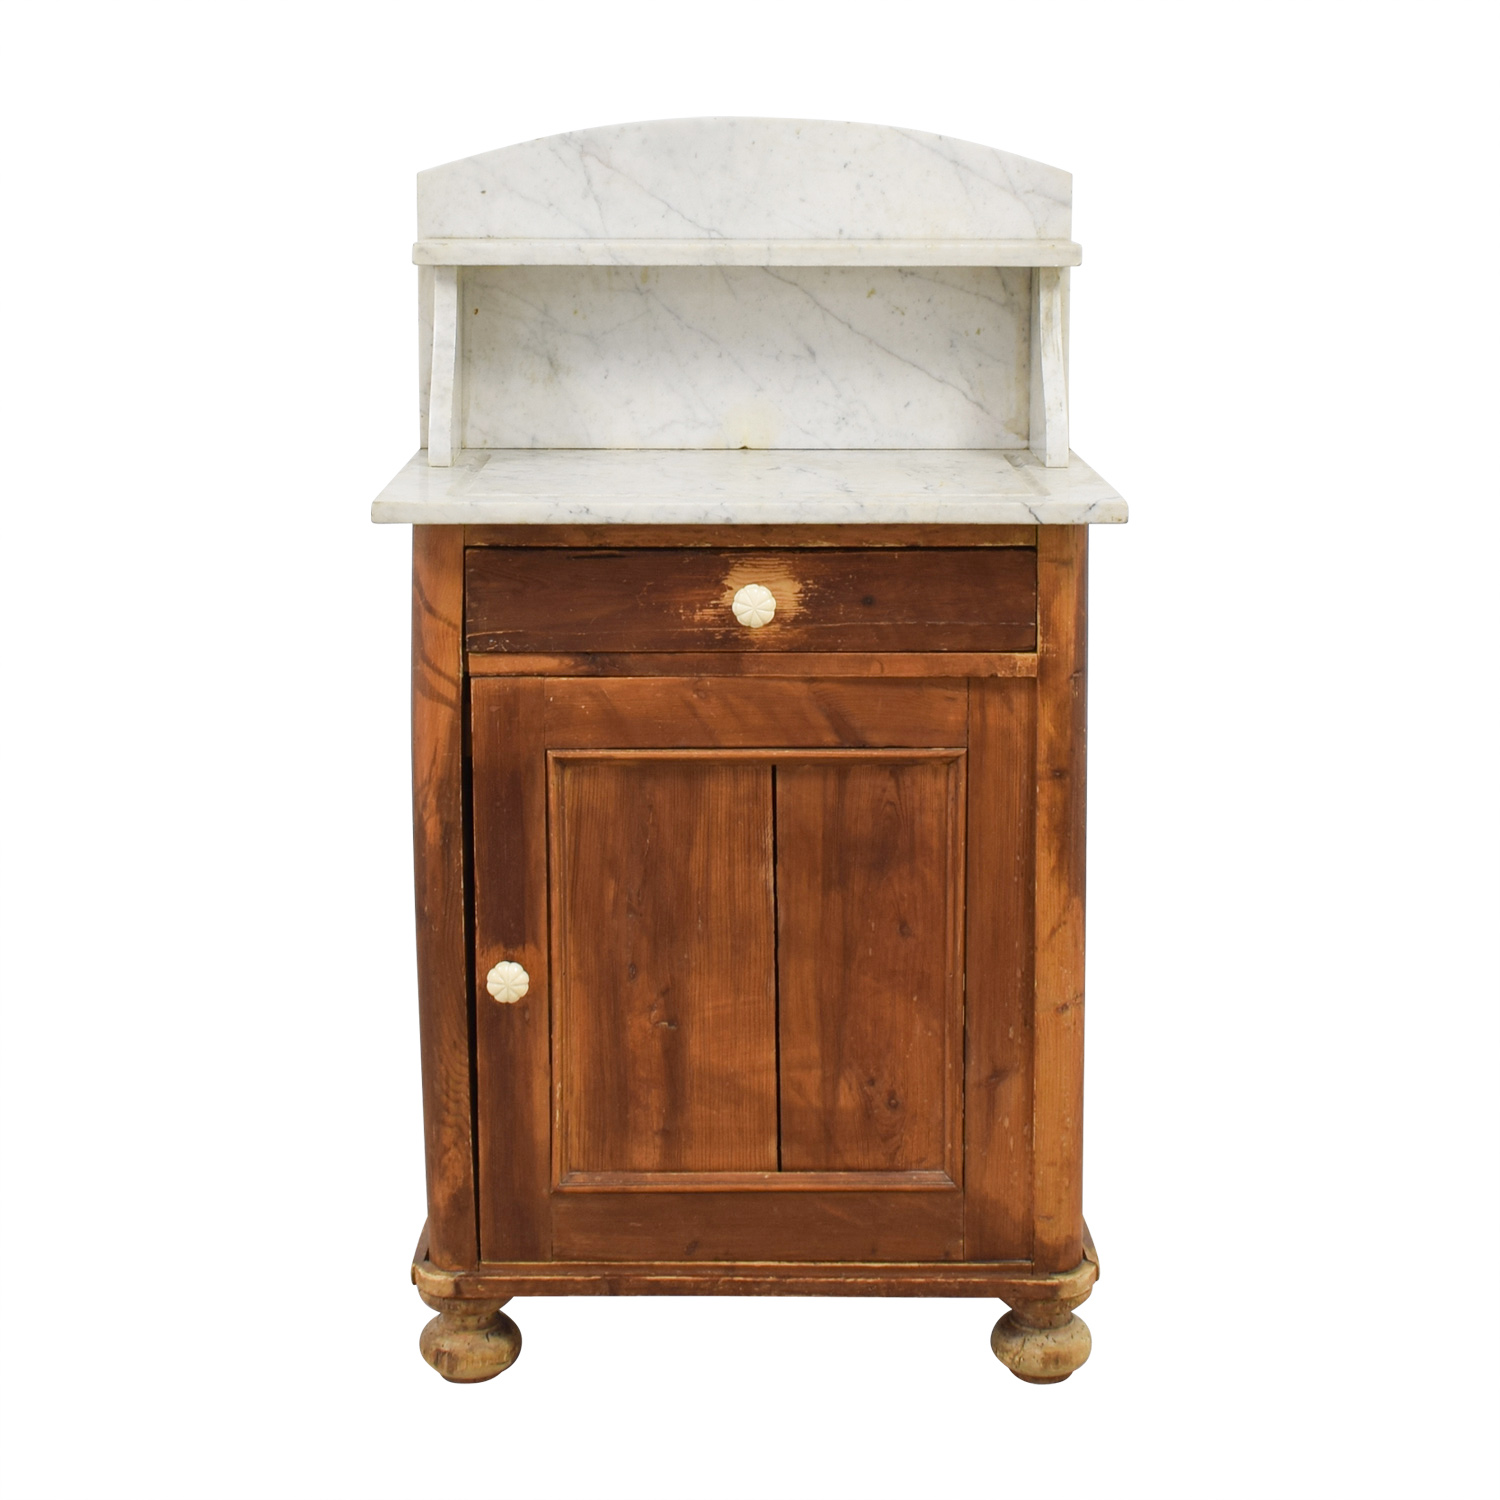 shop Evergreen Rustic Marble Topped Storage Cabinet Evergreen